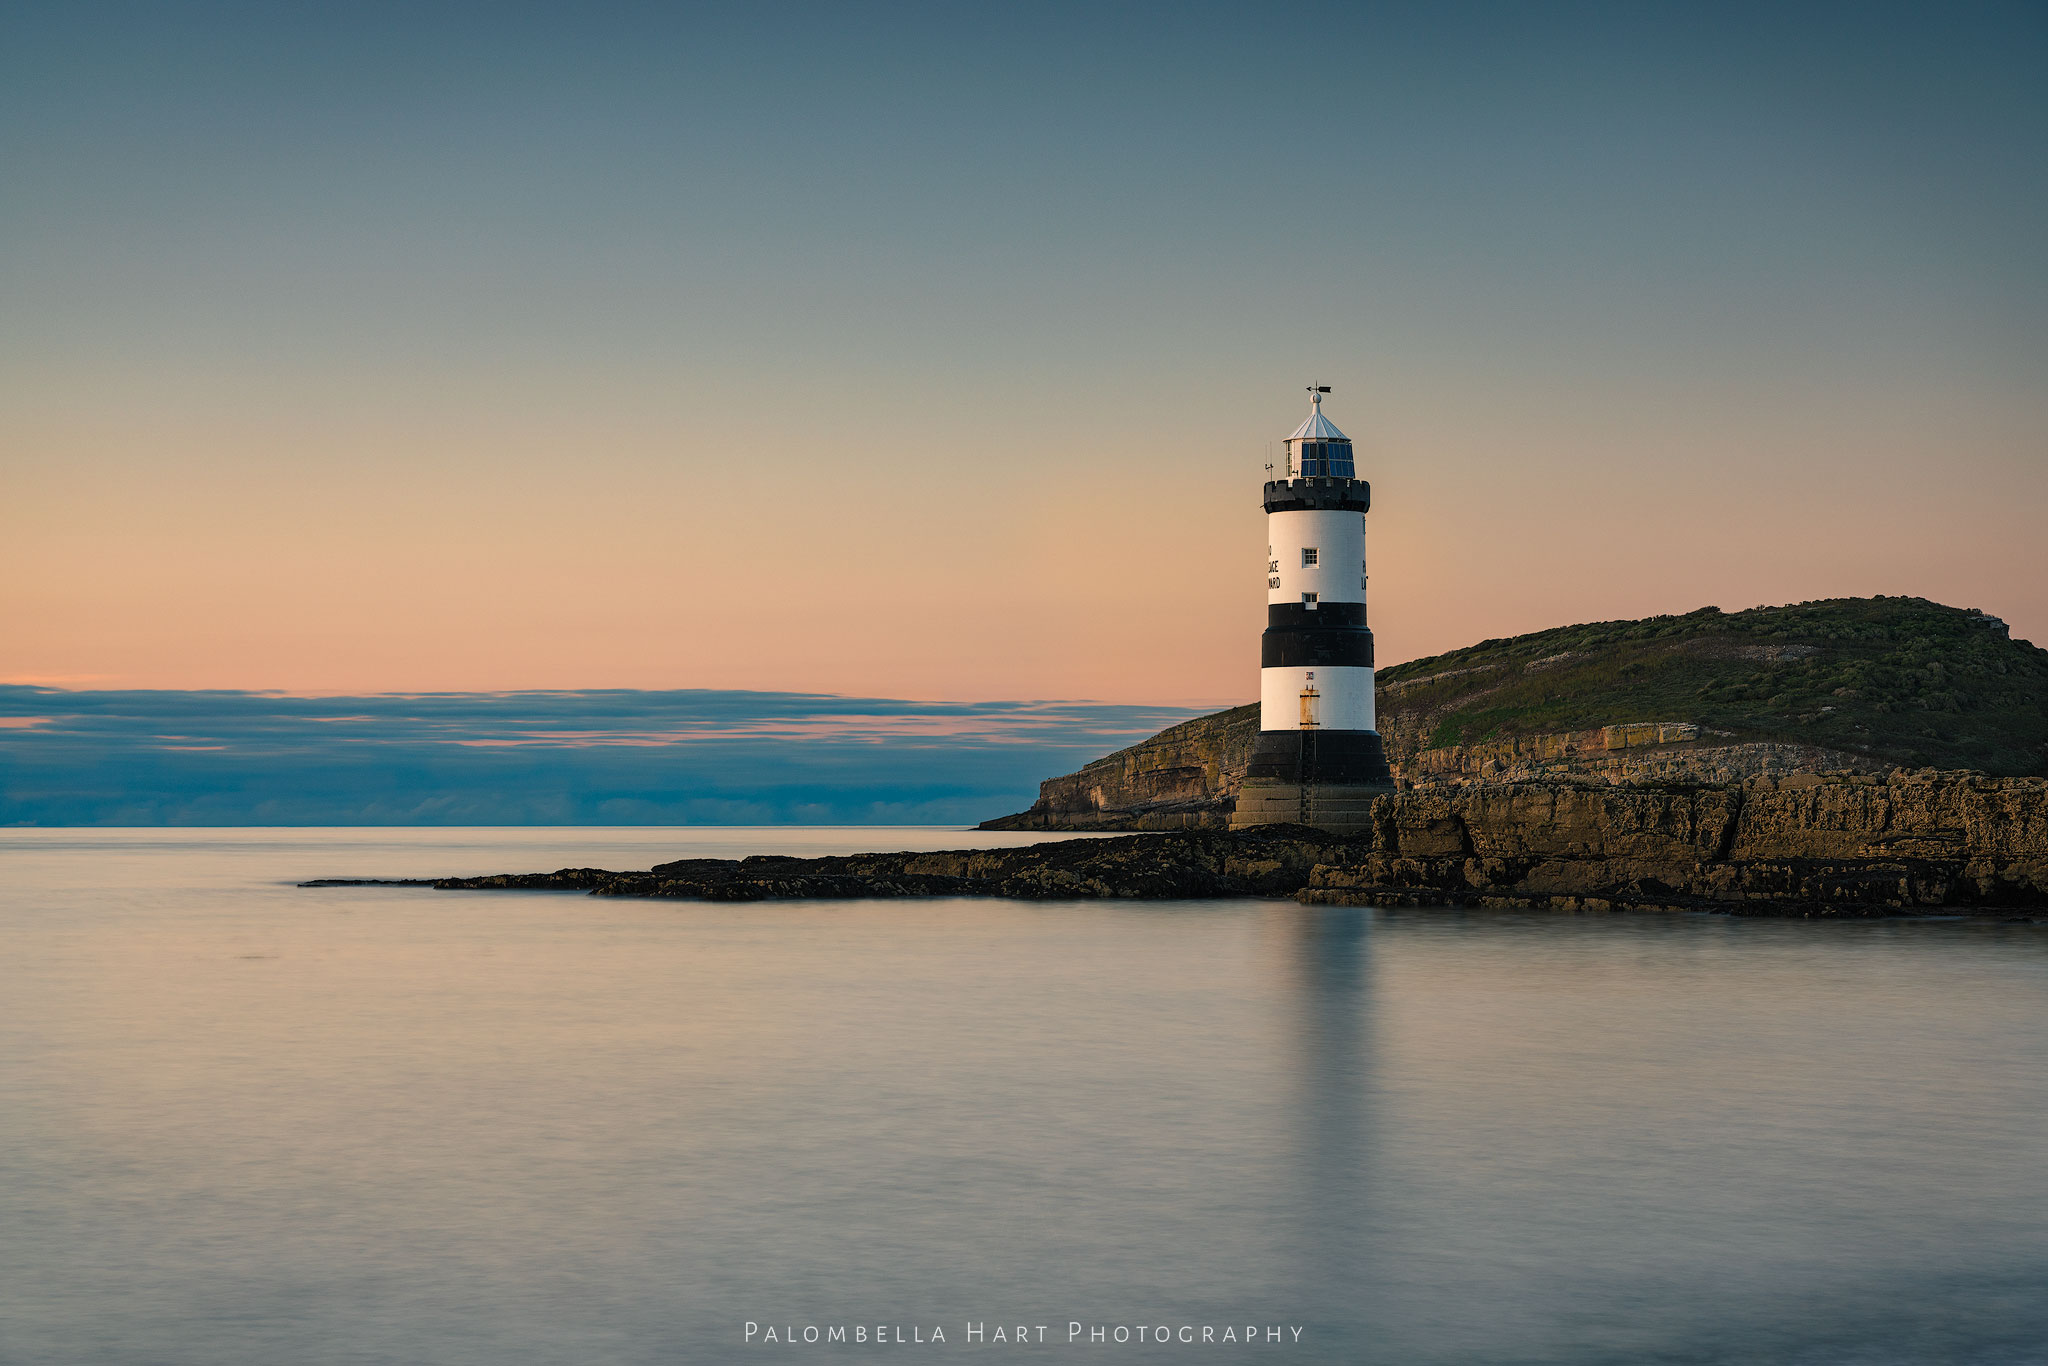 Penmon-Point-Sunser-11-Jul-20-b-copy